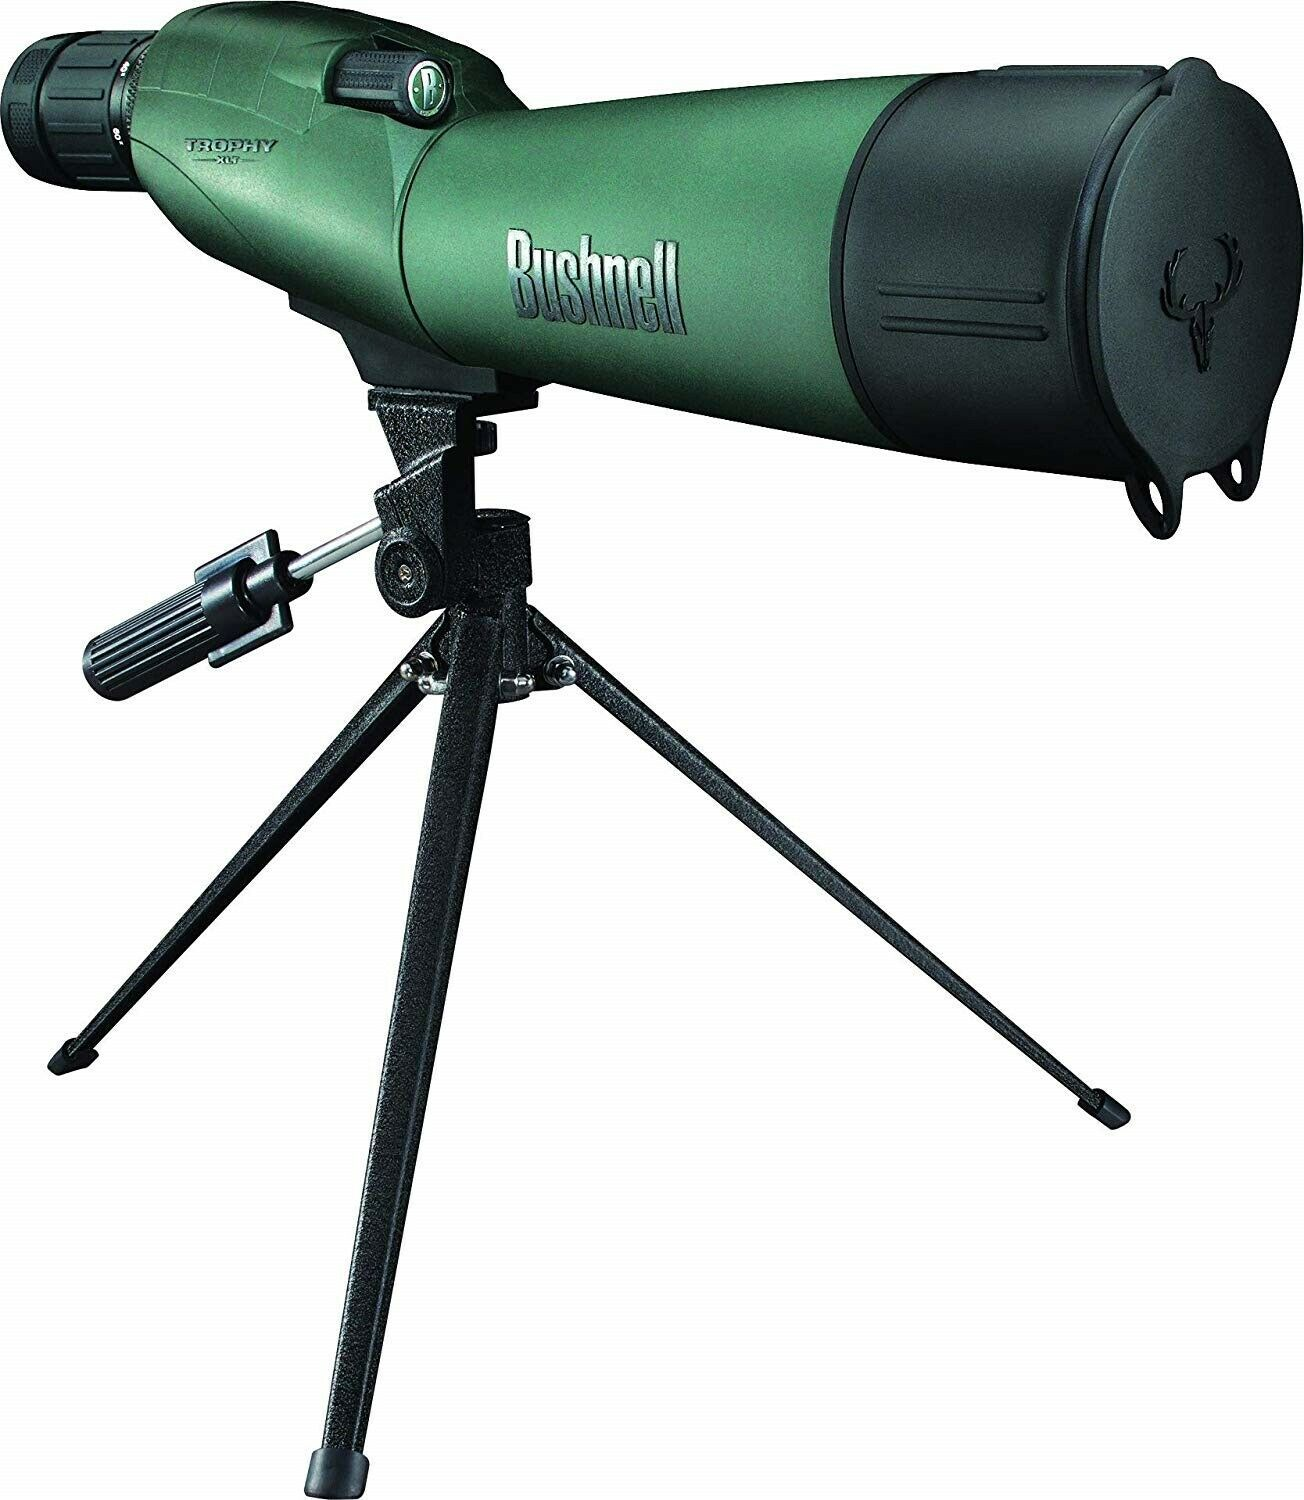 Spotting Scope Magnification For 1000 Yards A Buyer`s